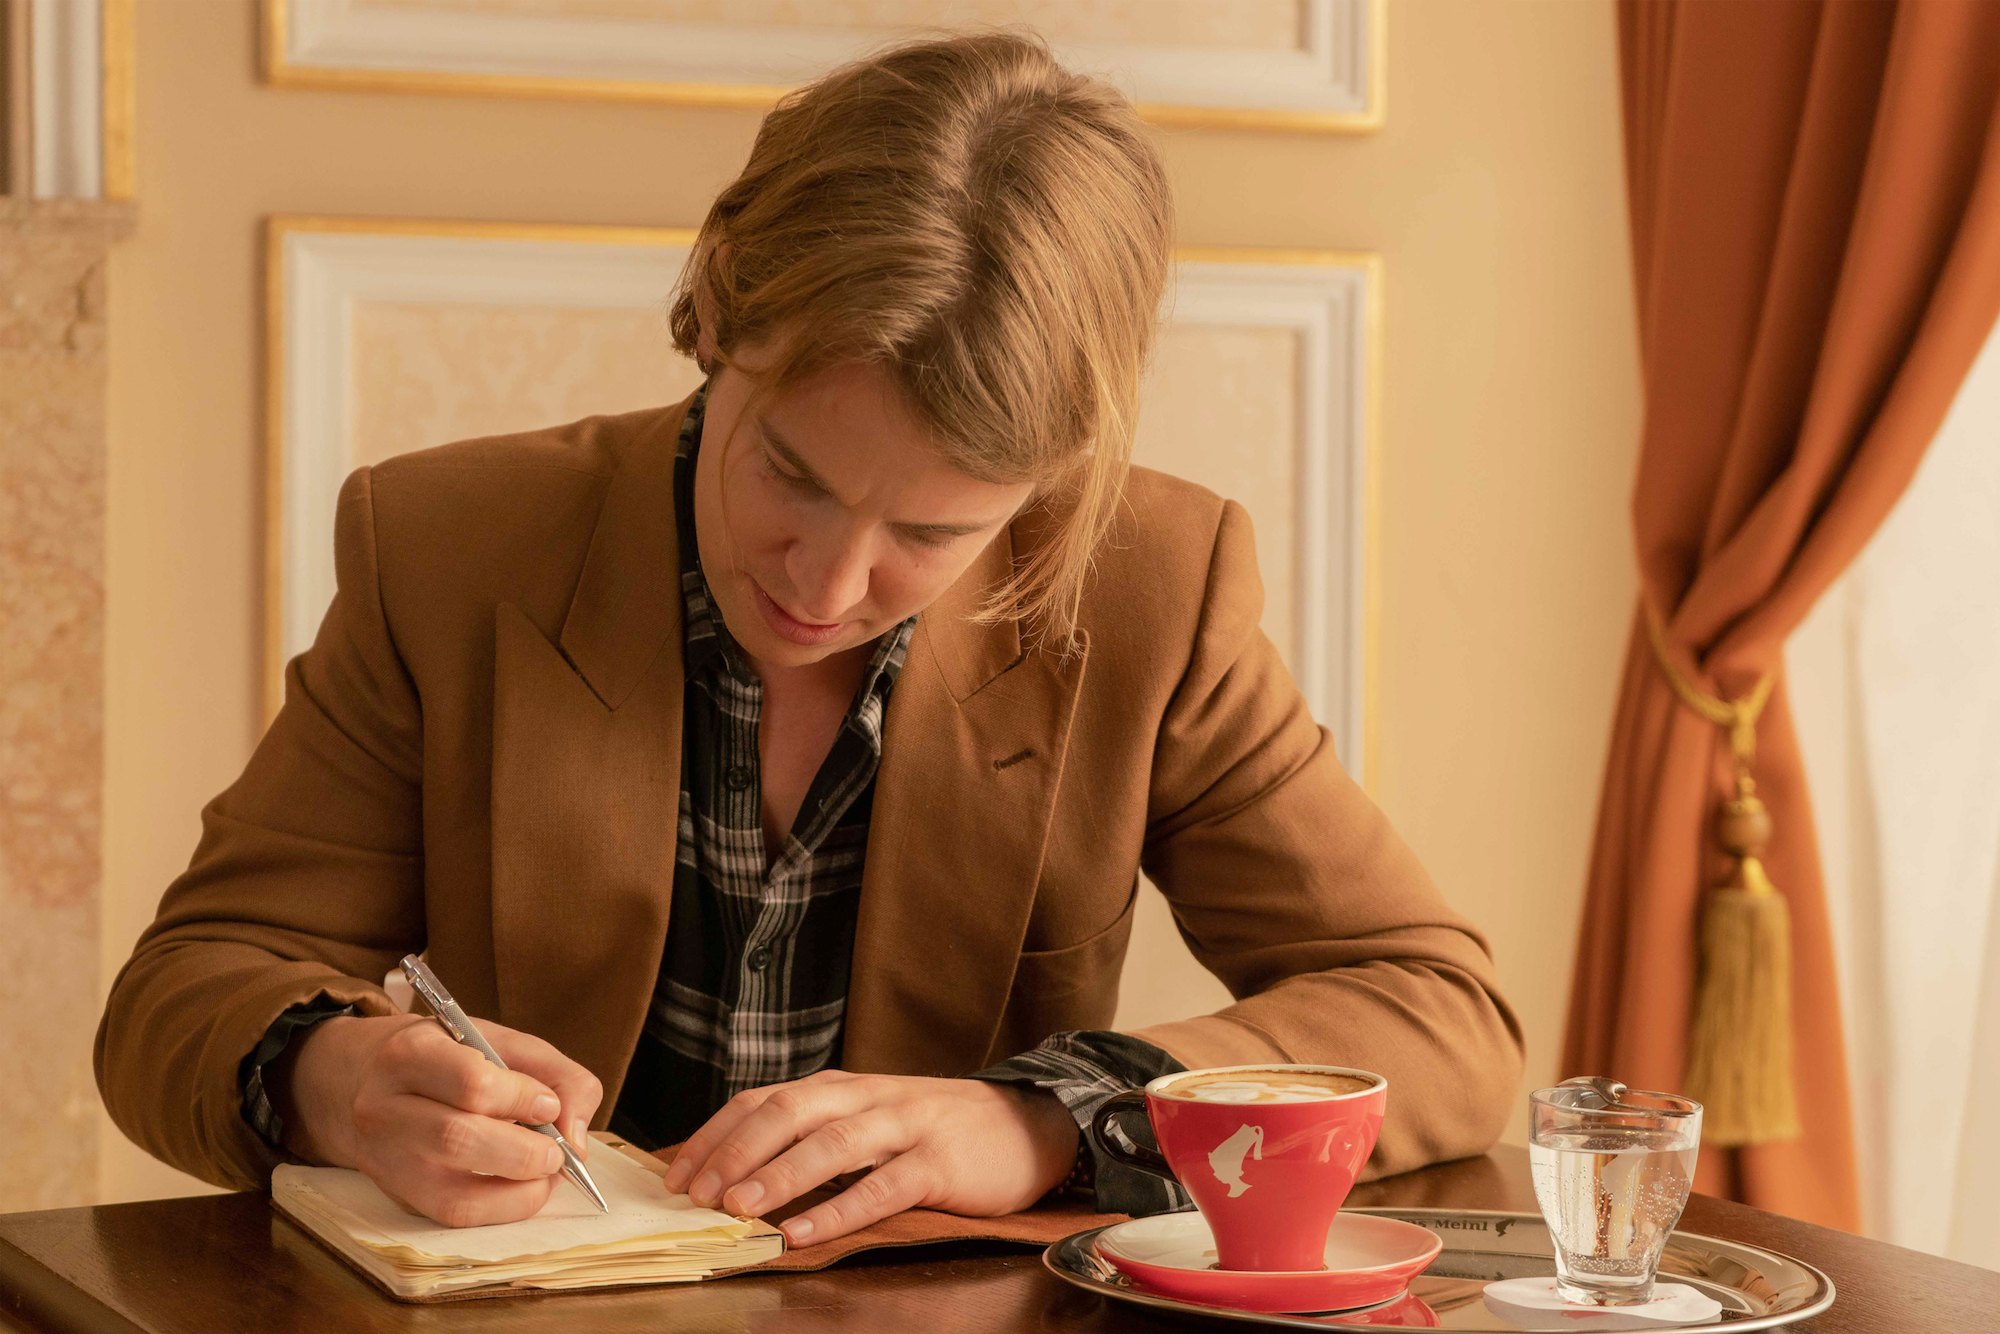 Tom Odell for Pours for Inspiration campaign writing